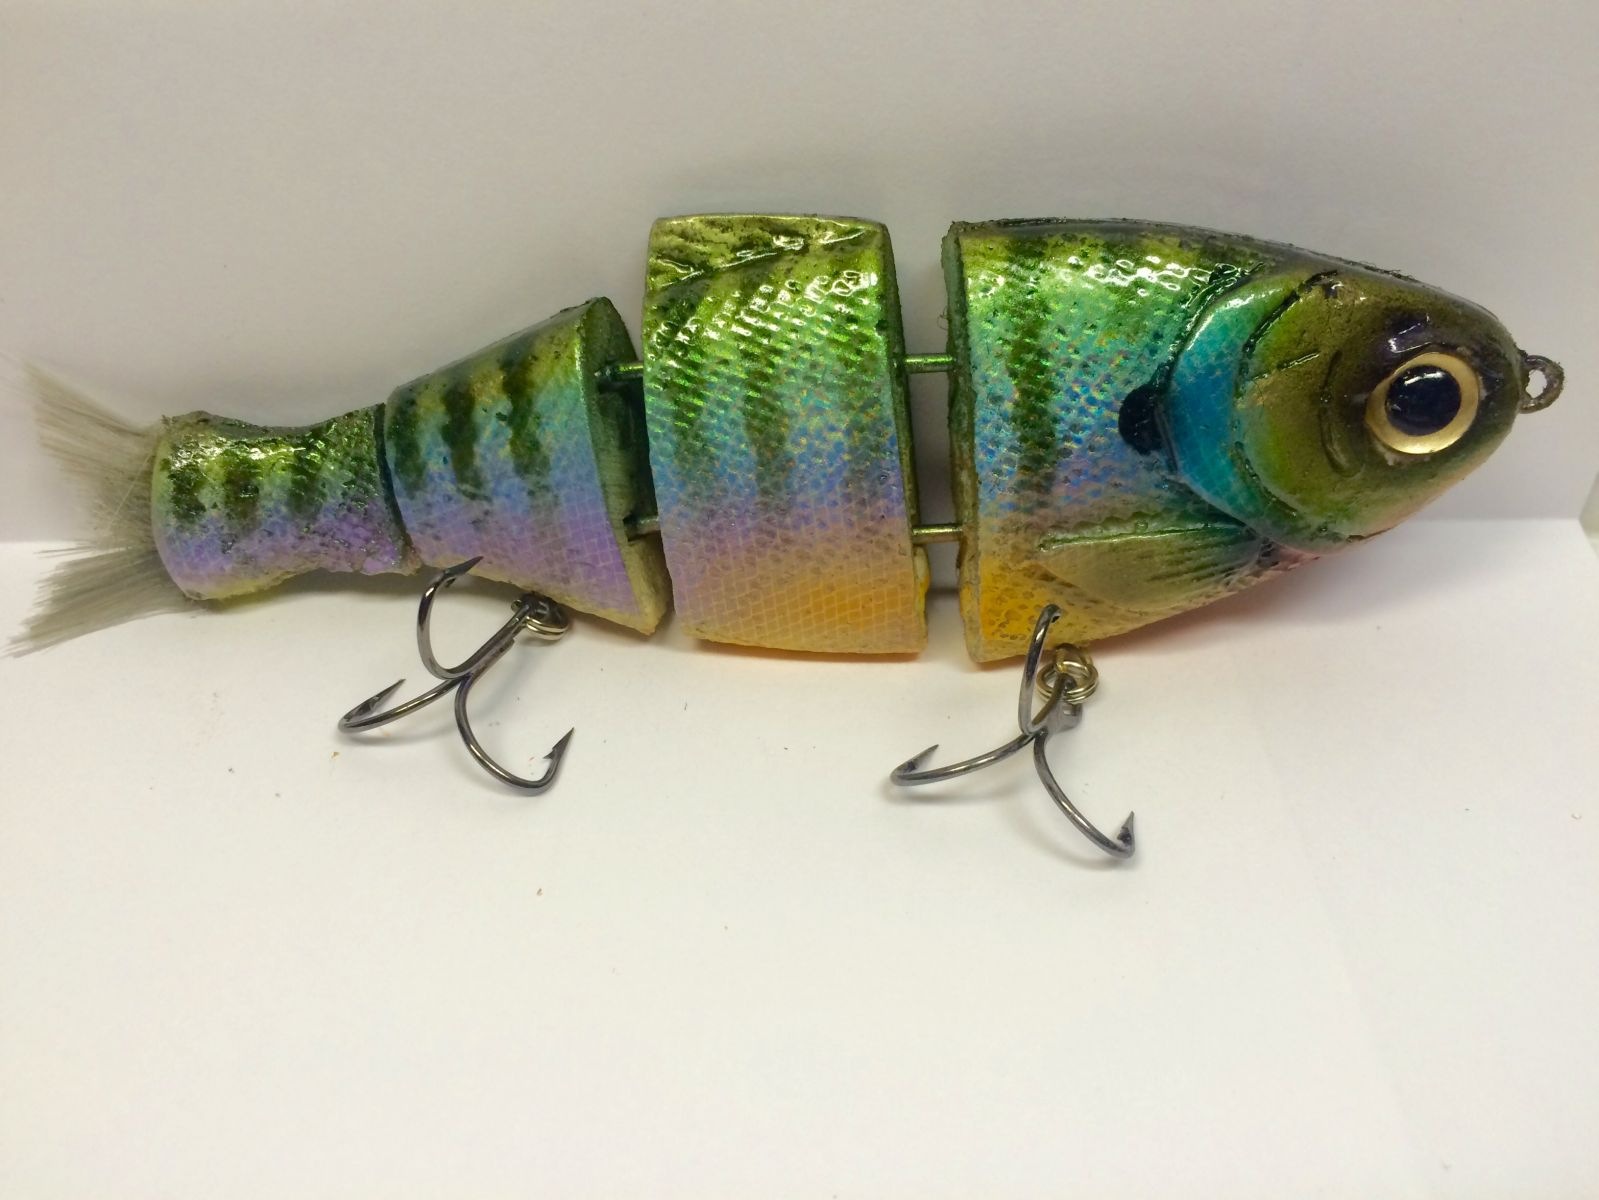 Foiled Bluegill Bullshad Swimbait